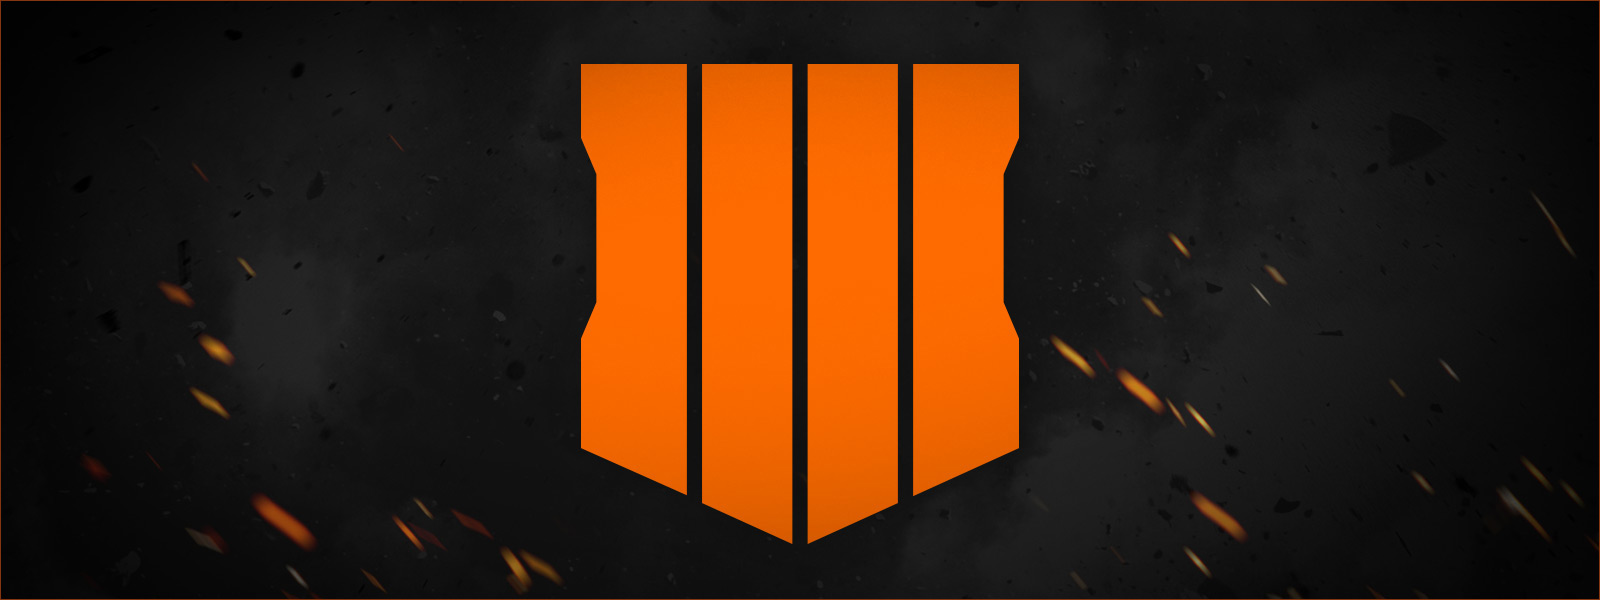 Orange 4 logo on a background of smoke and embers